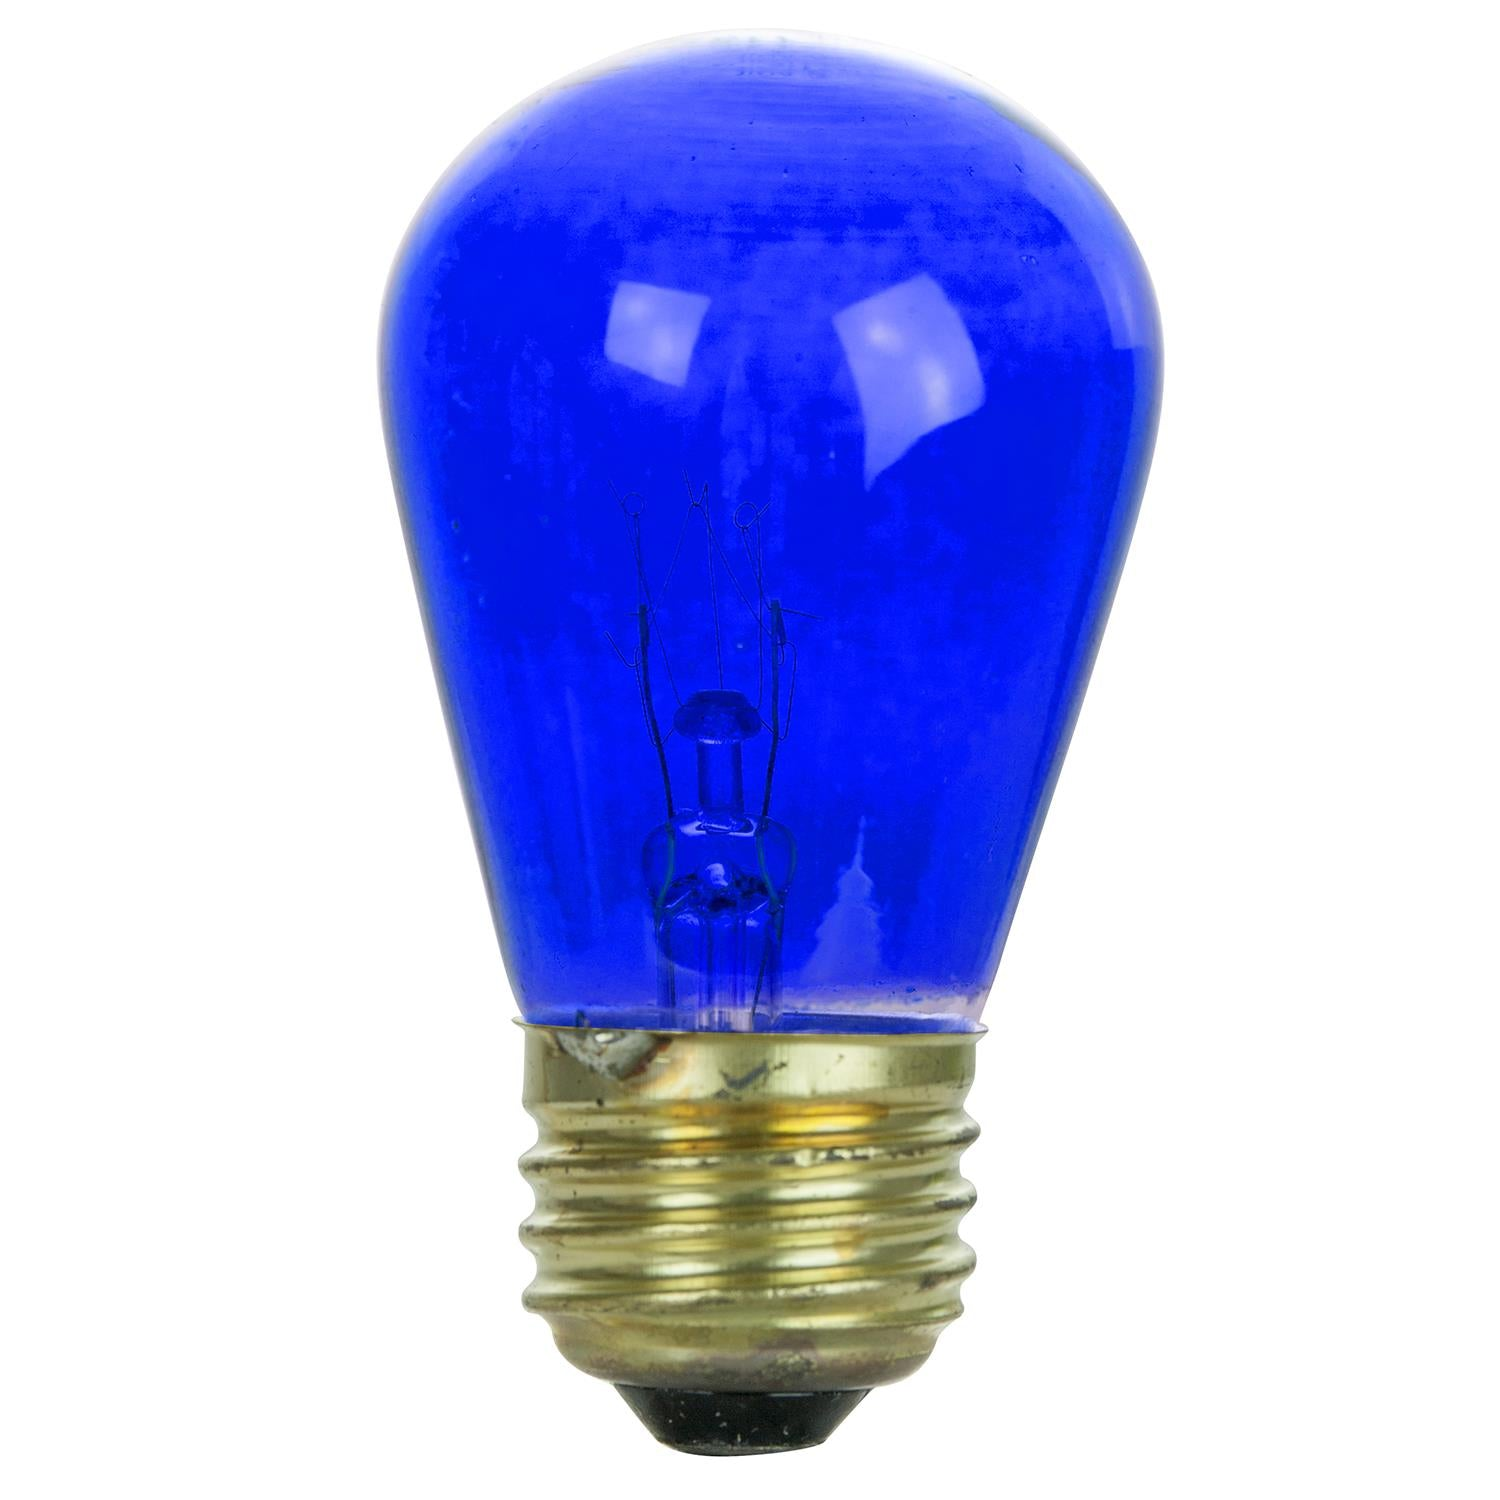 4Pk - SUNLITE 11w S14 Blue Transparent 120v Medium Base Incandescent Bulb